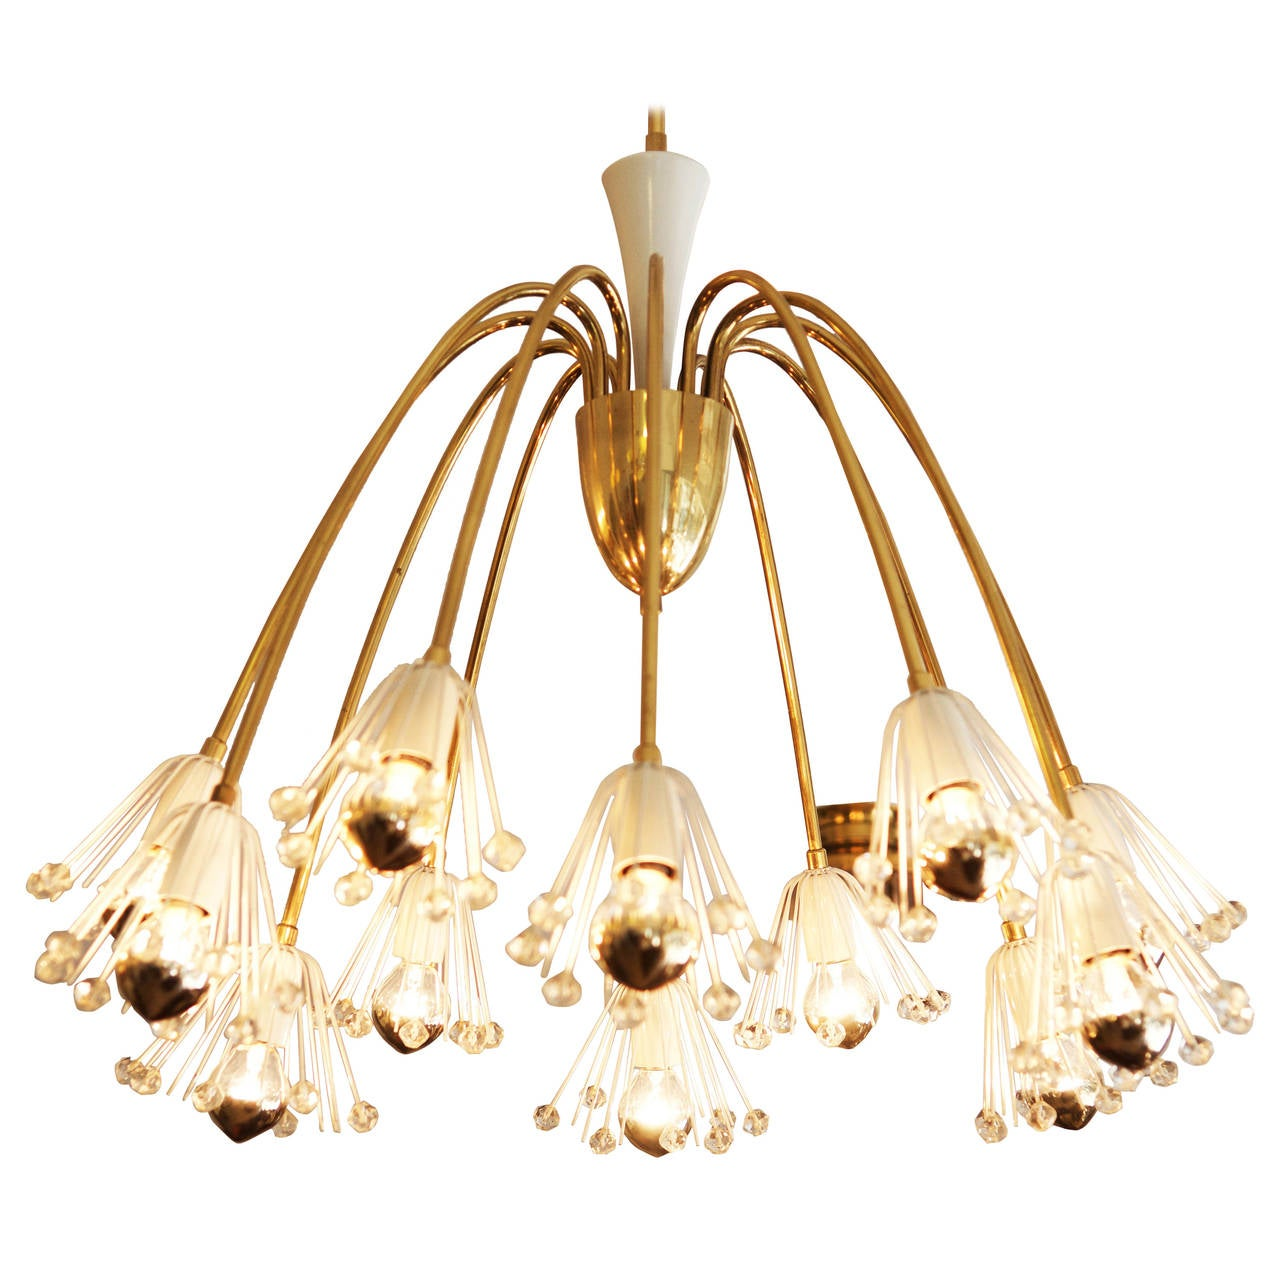 Large Brass Chandelier By Emil Stejnar For Rupert Nikoll